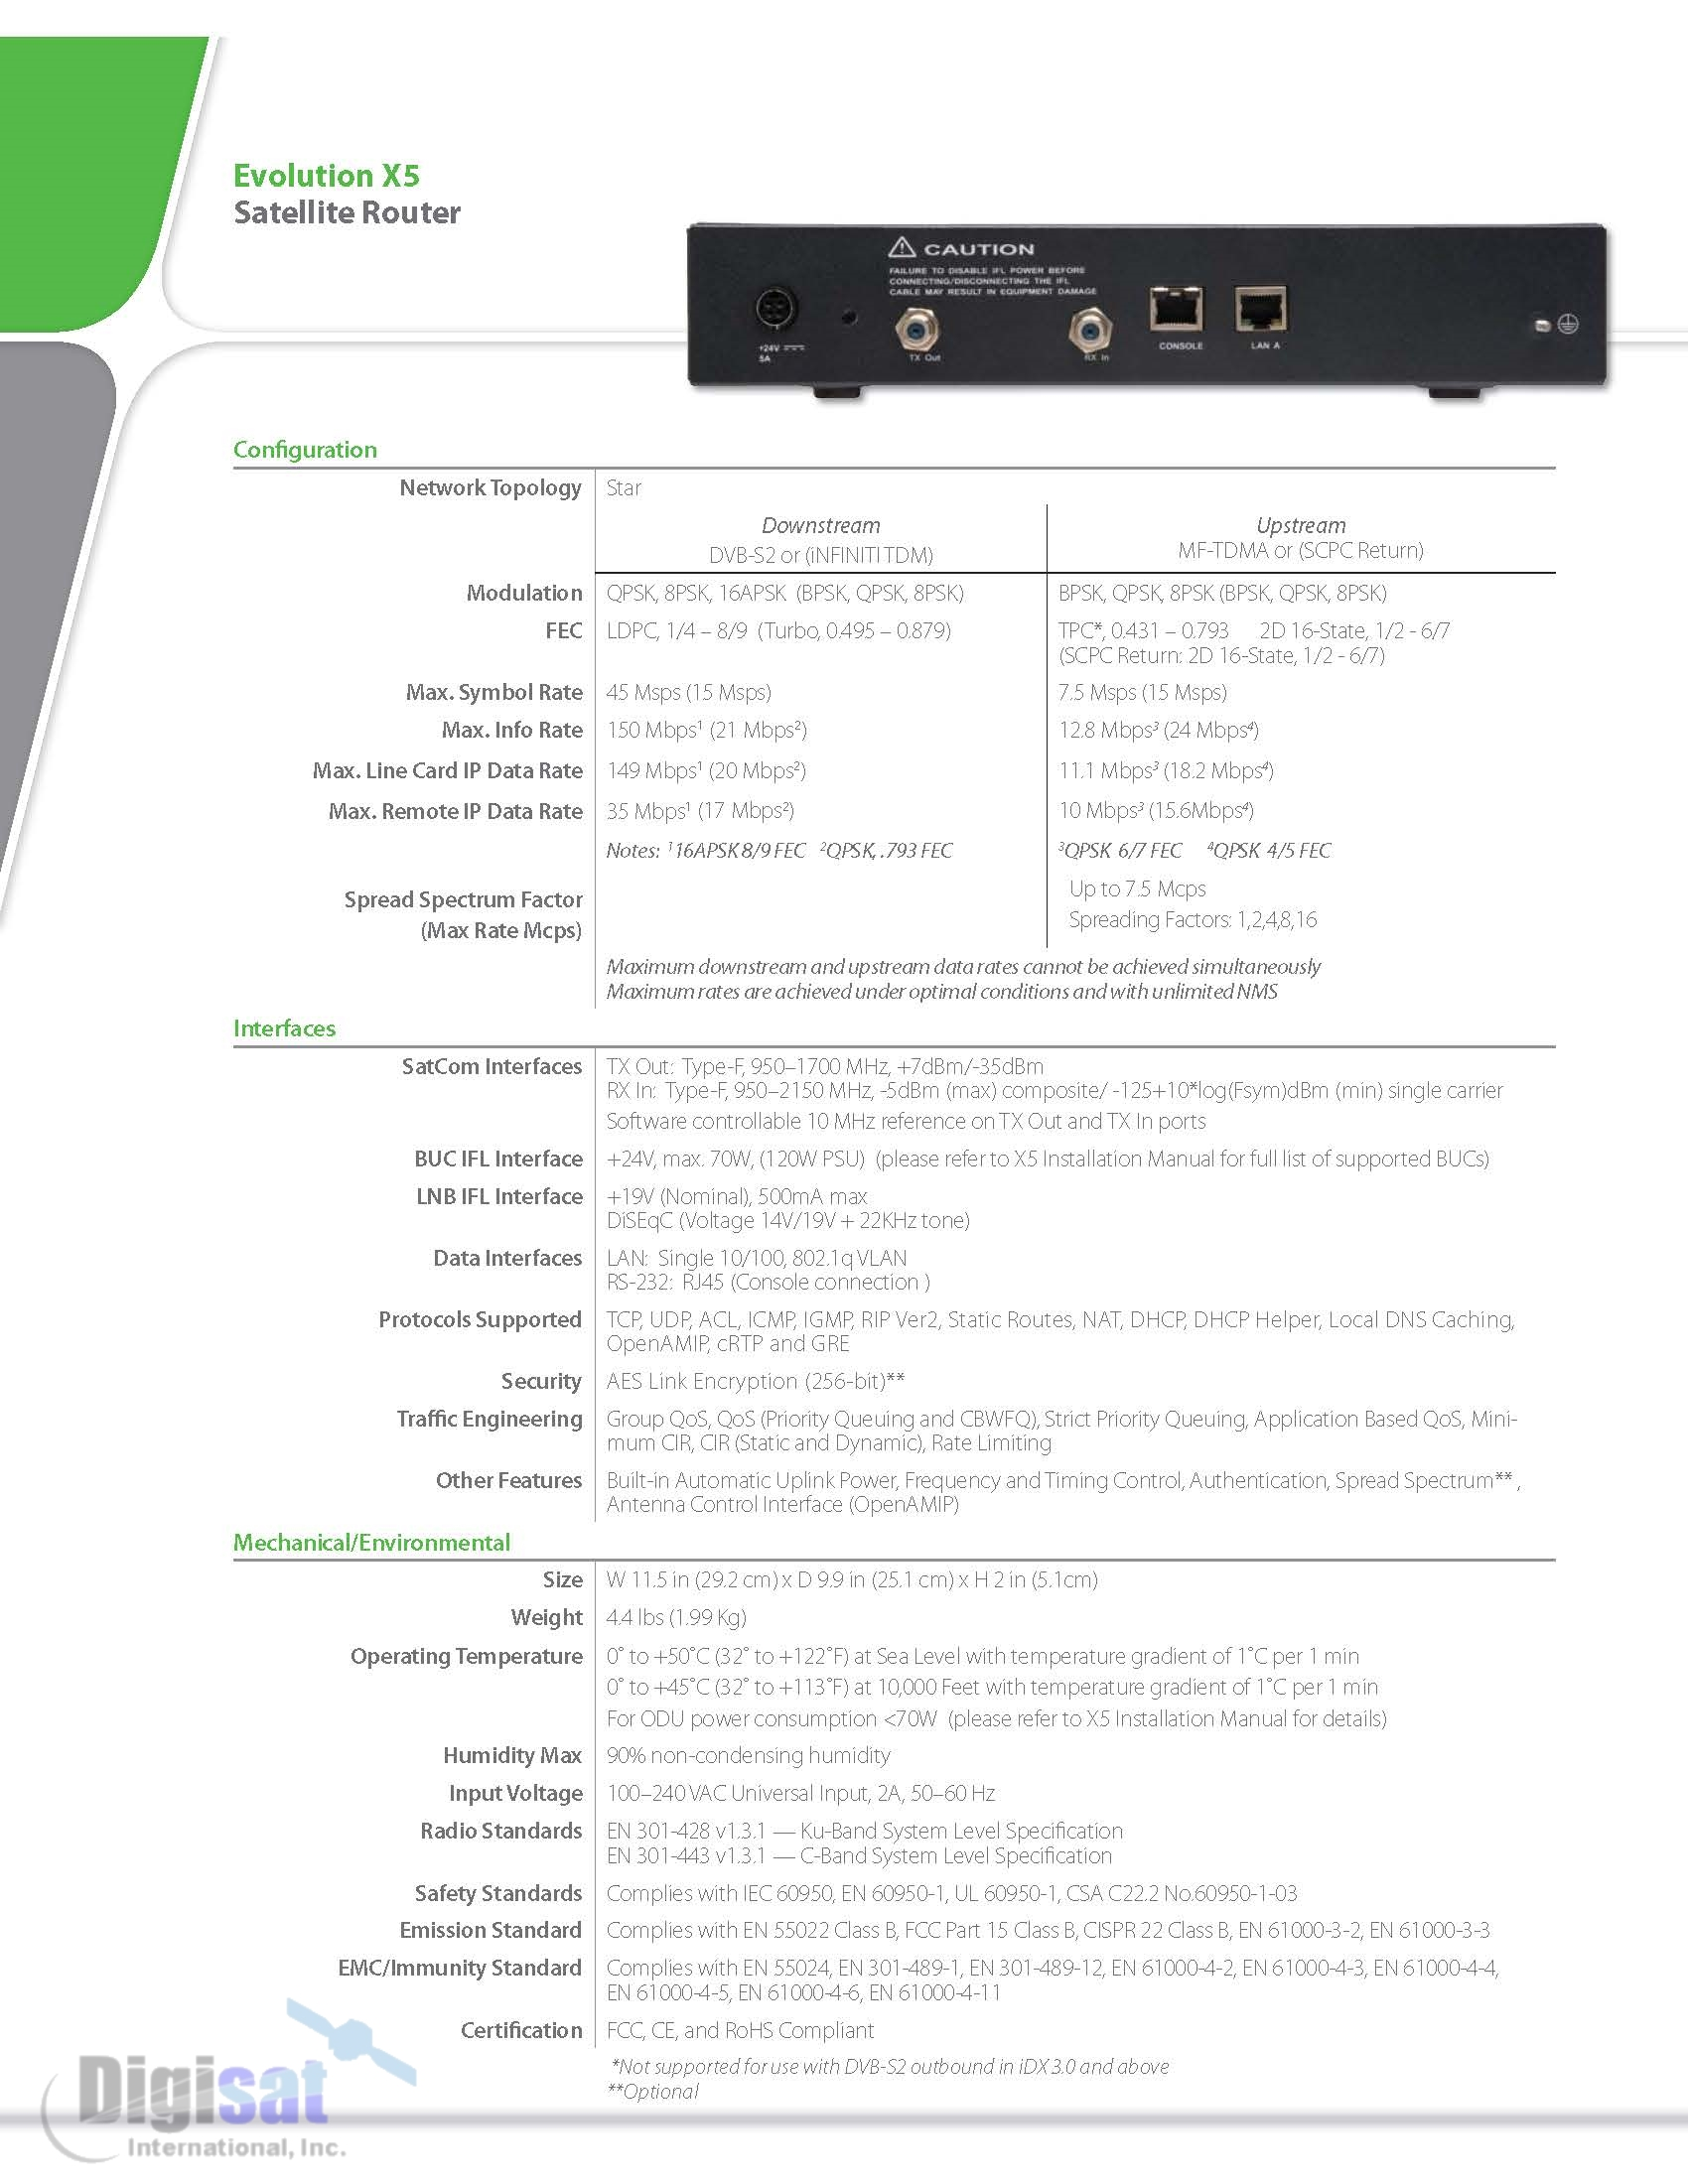 iDirect X5 Technical Specifications Page 2